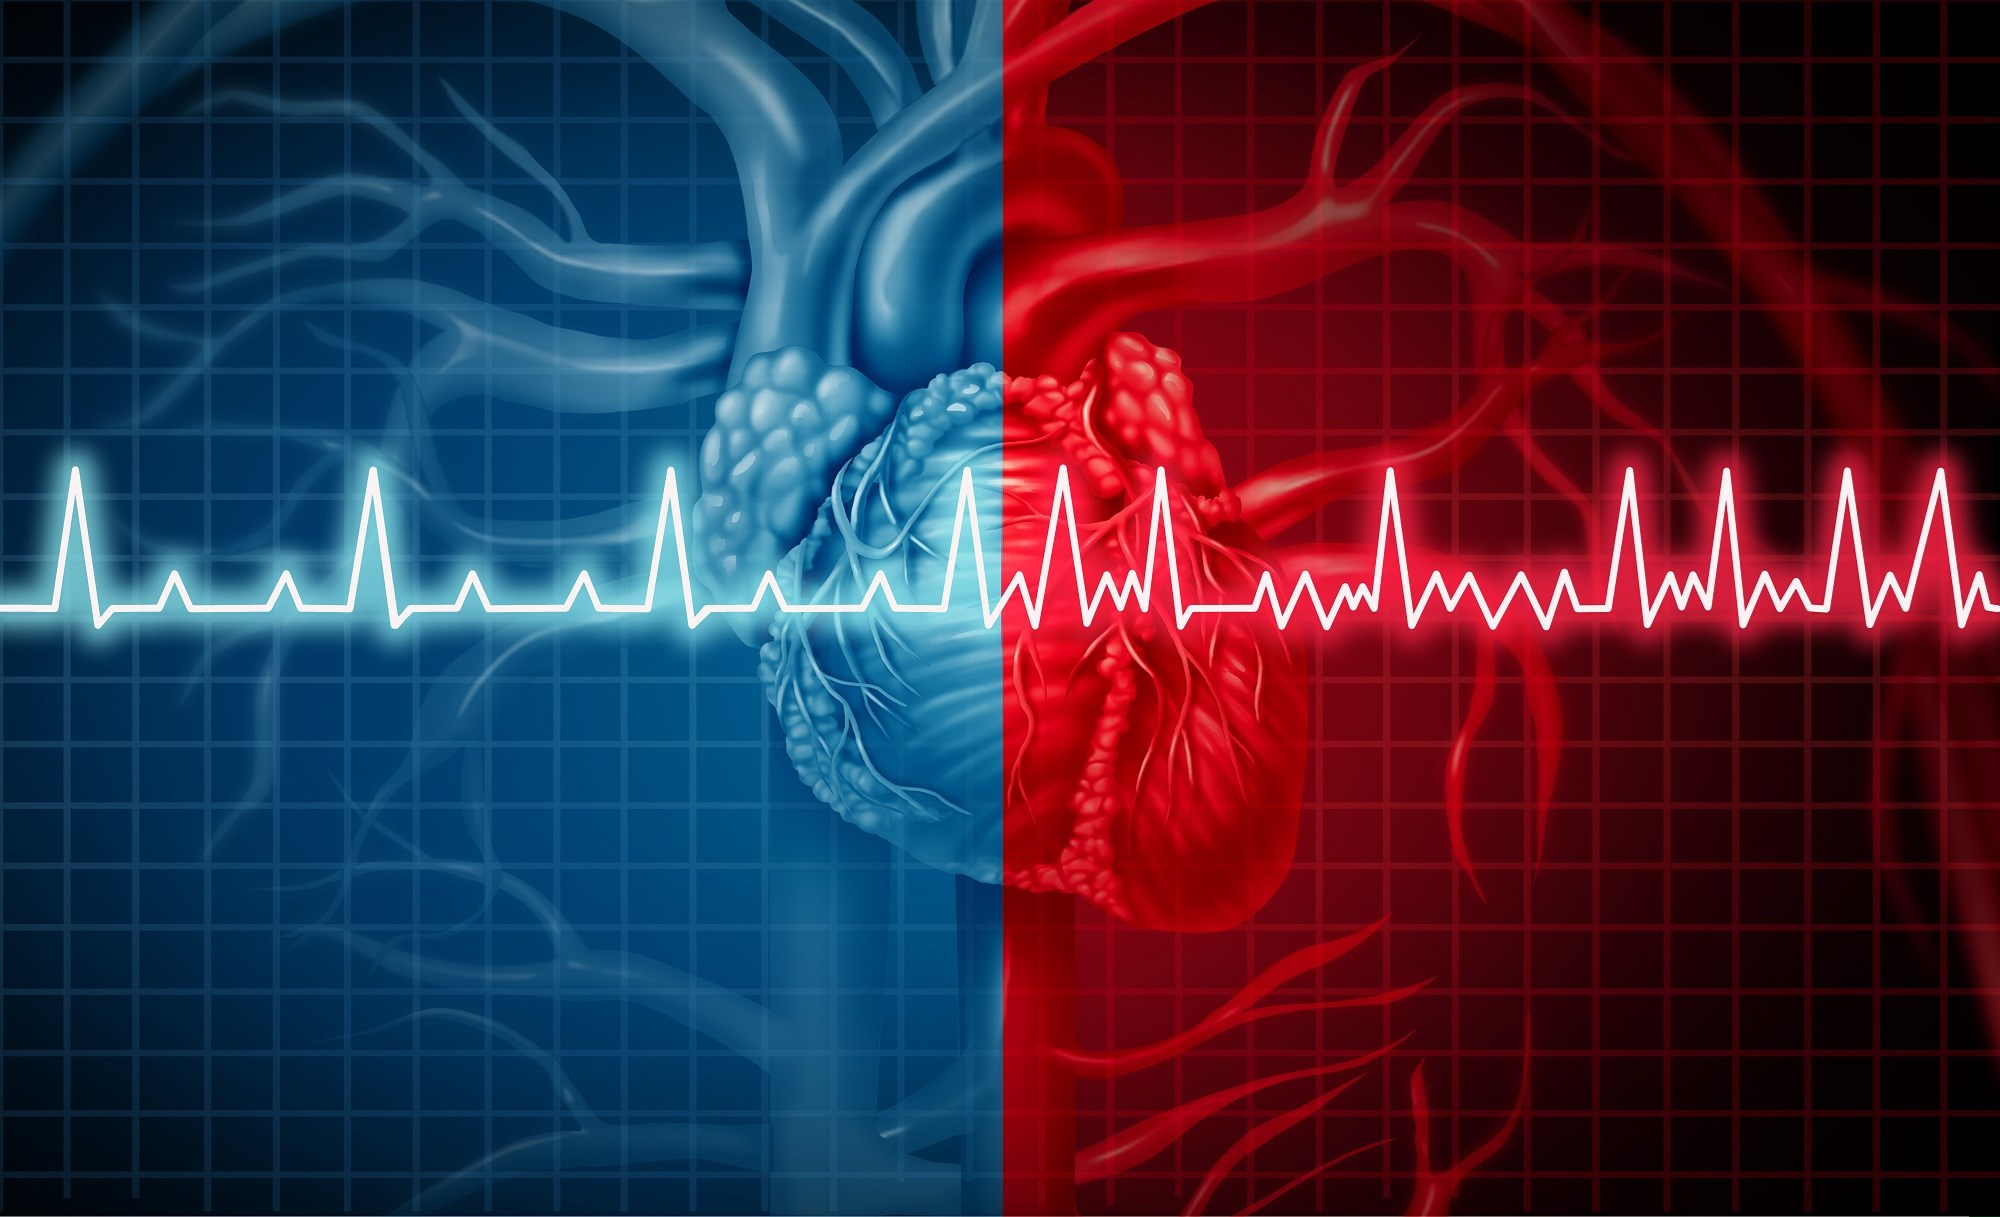 The risk for atrial fibrillation is increased among antidepressant users, particularly before treatment initiation.